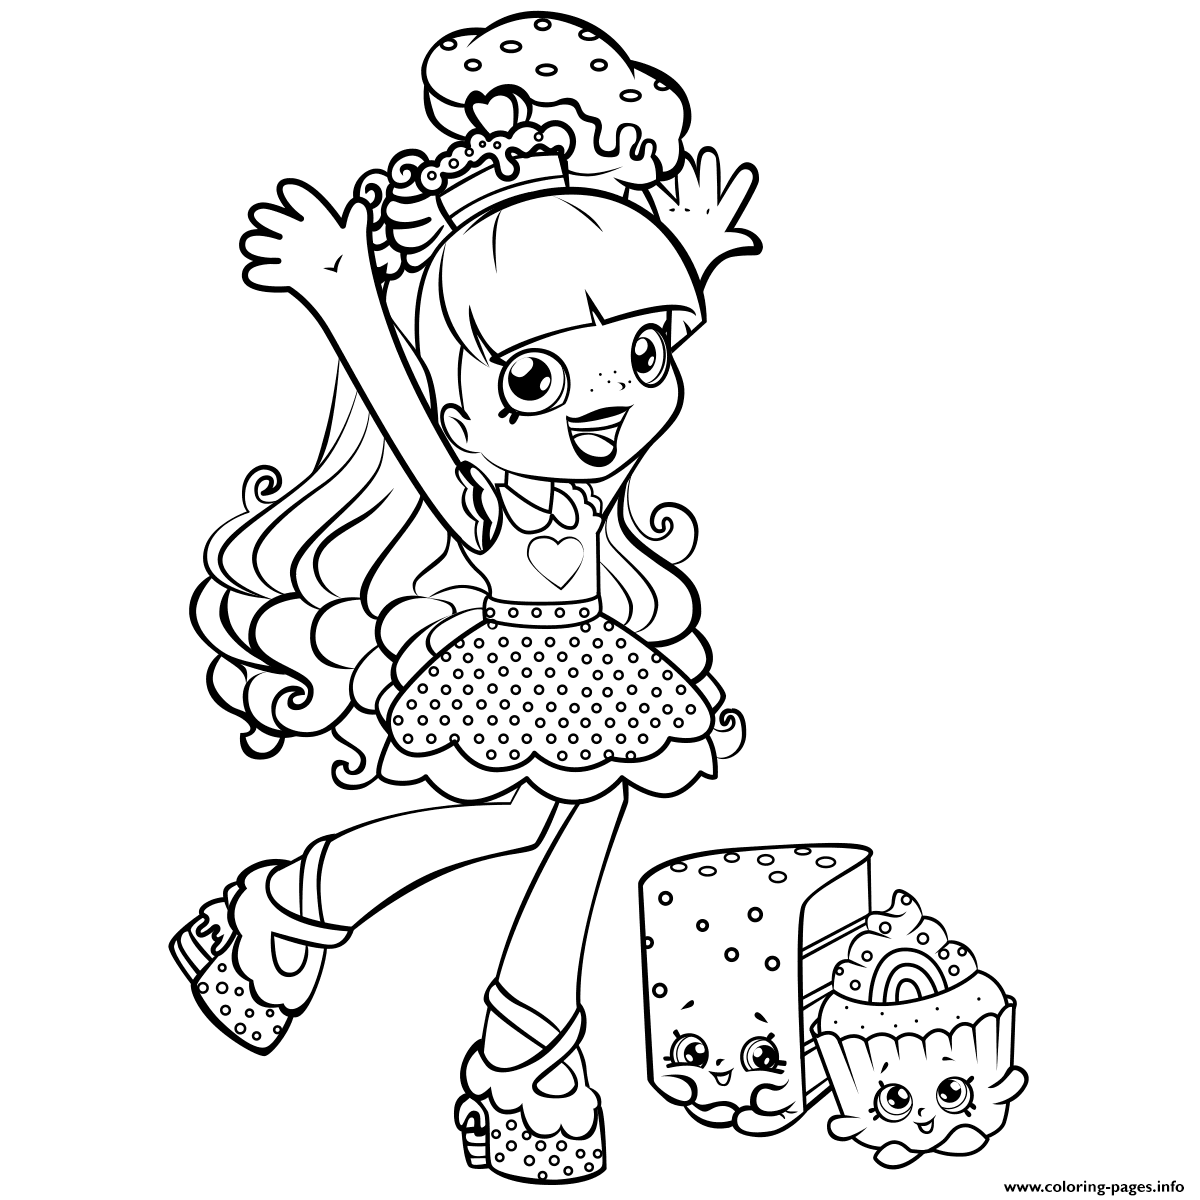 Shopkins coloring pages season 3 - Shopkins Shoppies Colouring Print Shopkins Shoppies Coloring Pages